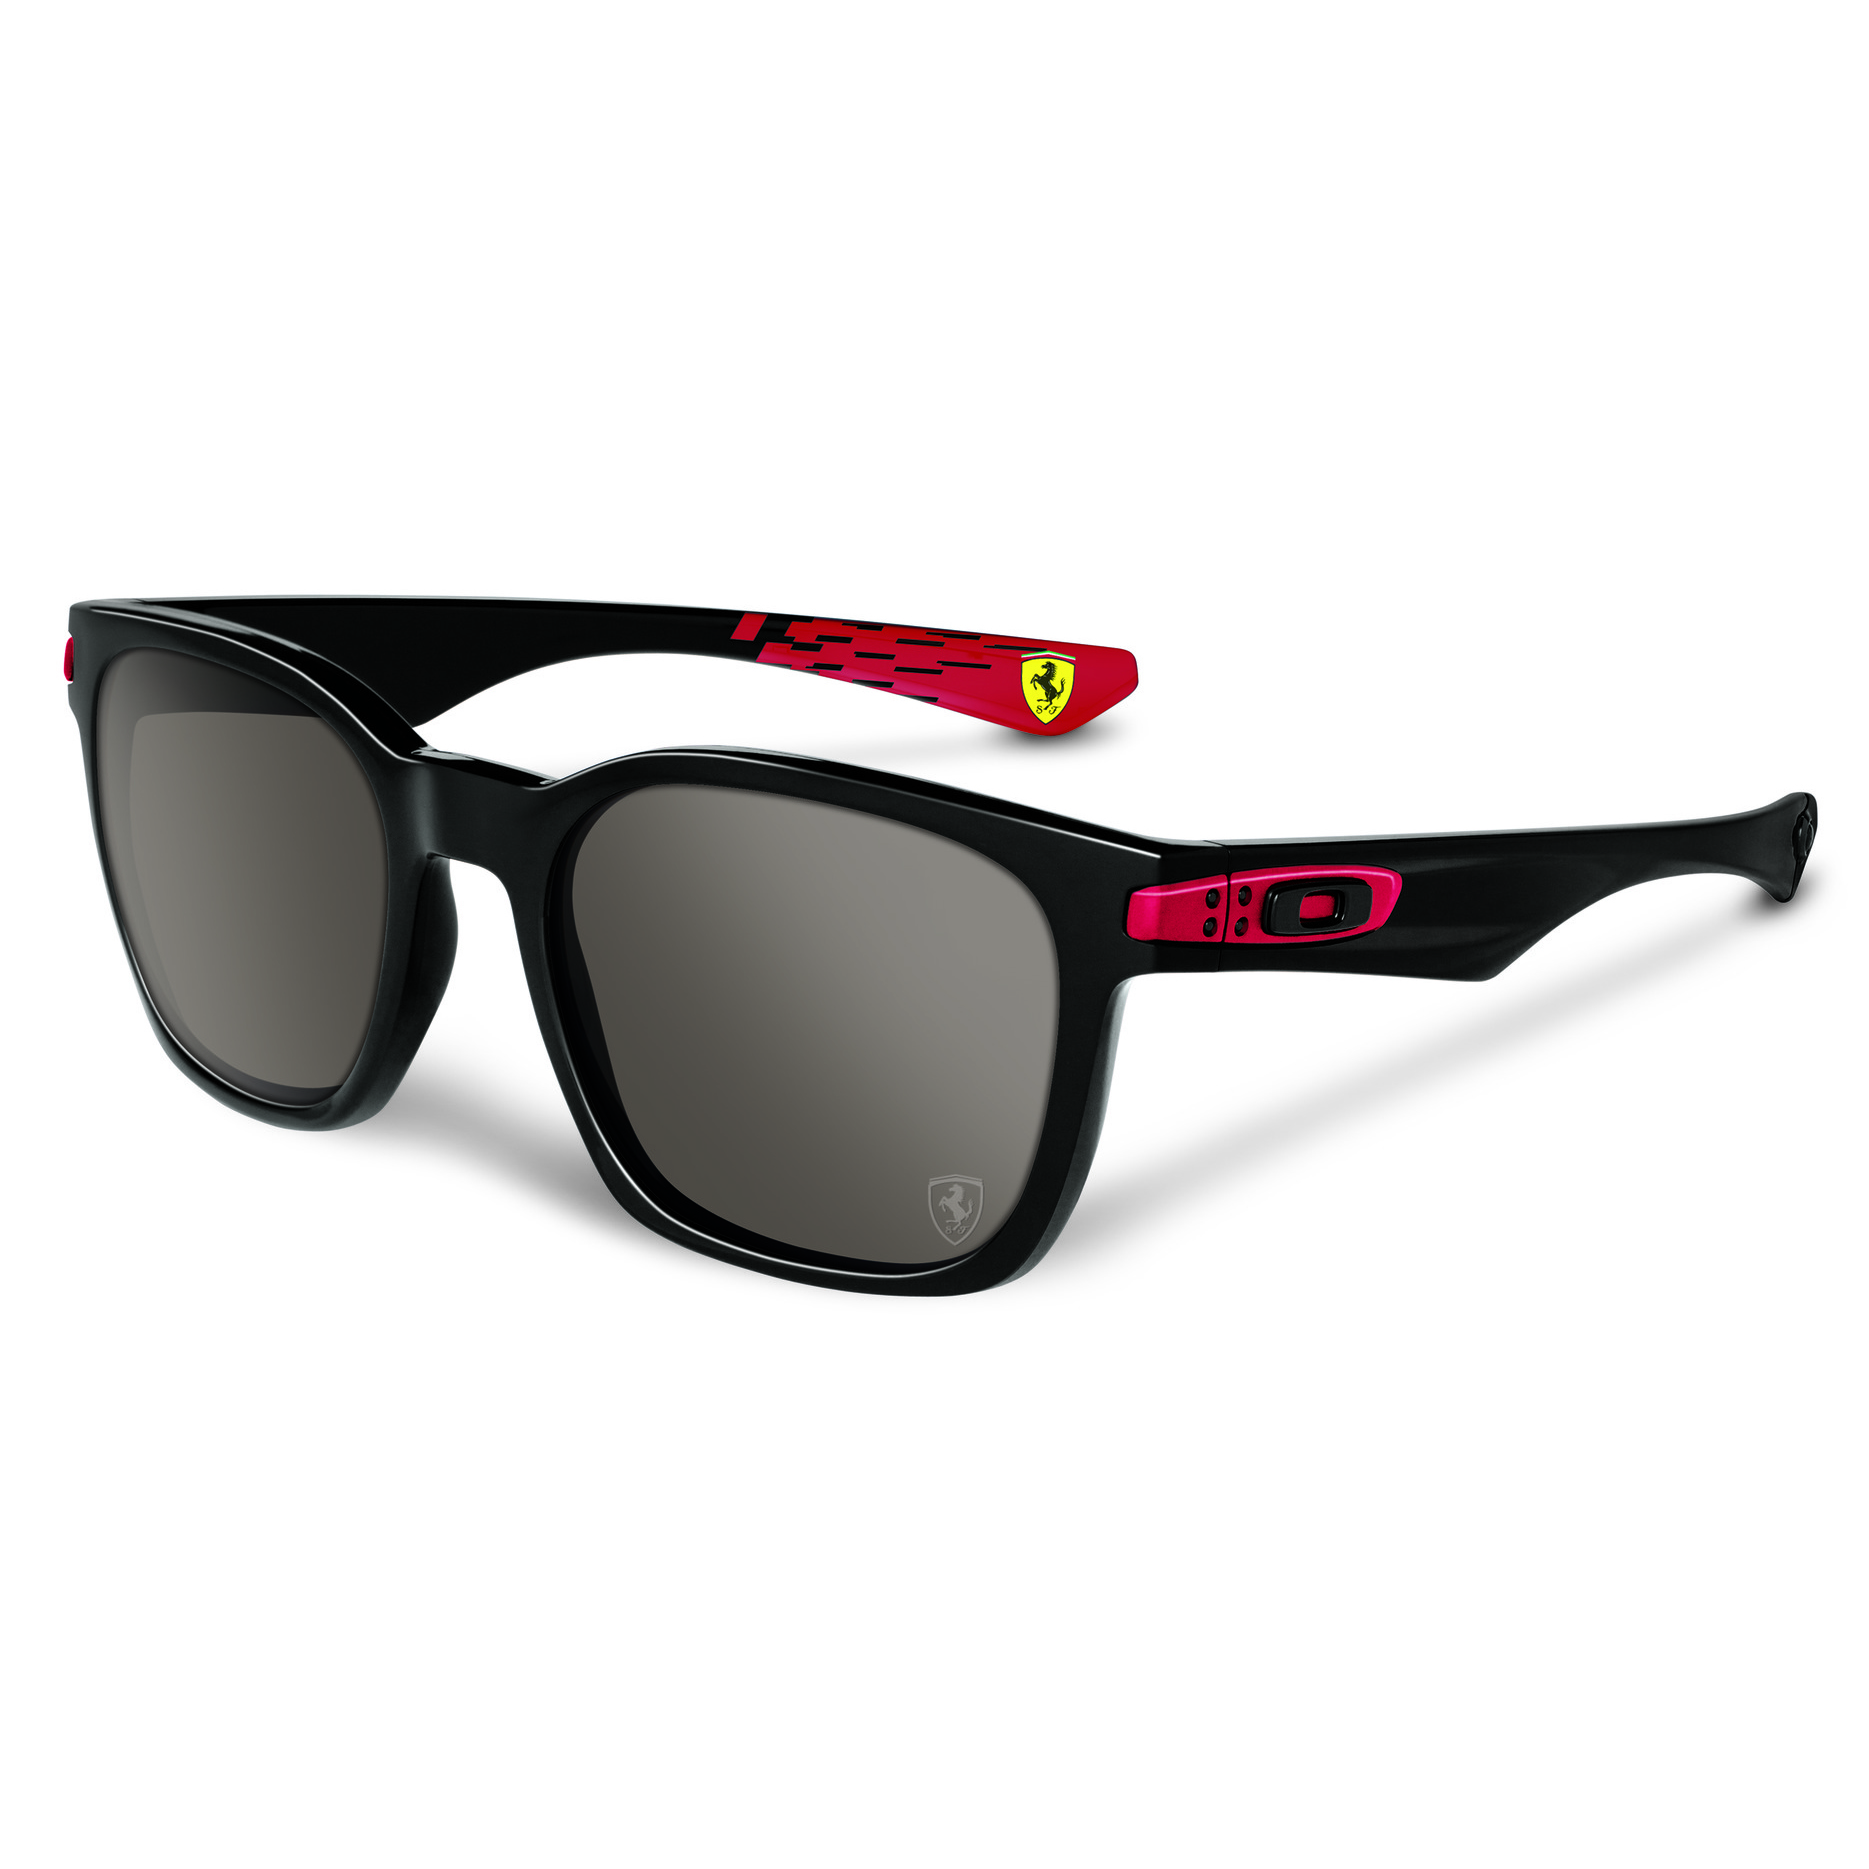 Scuderia Ferrari OAKLEY Garage Rock Sunglasses